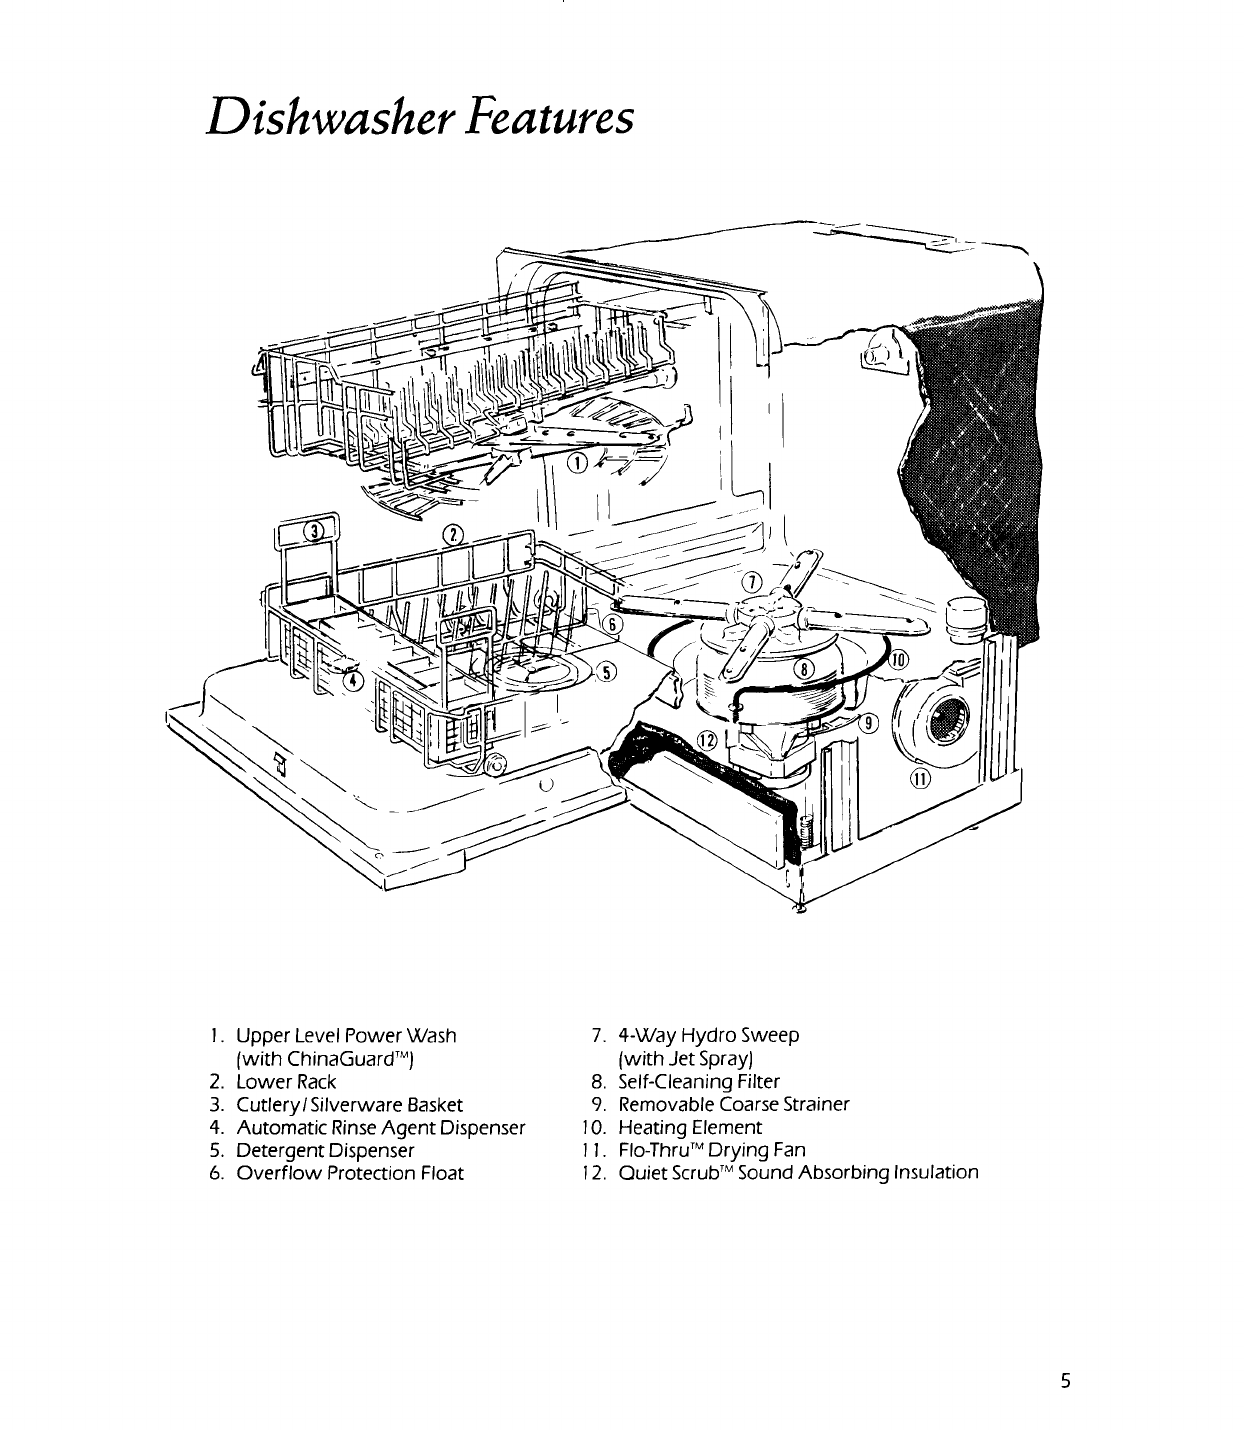 Kitchenaid KUDI220WWH4 User Manual DISHWASHER Manuals And